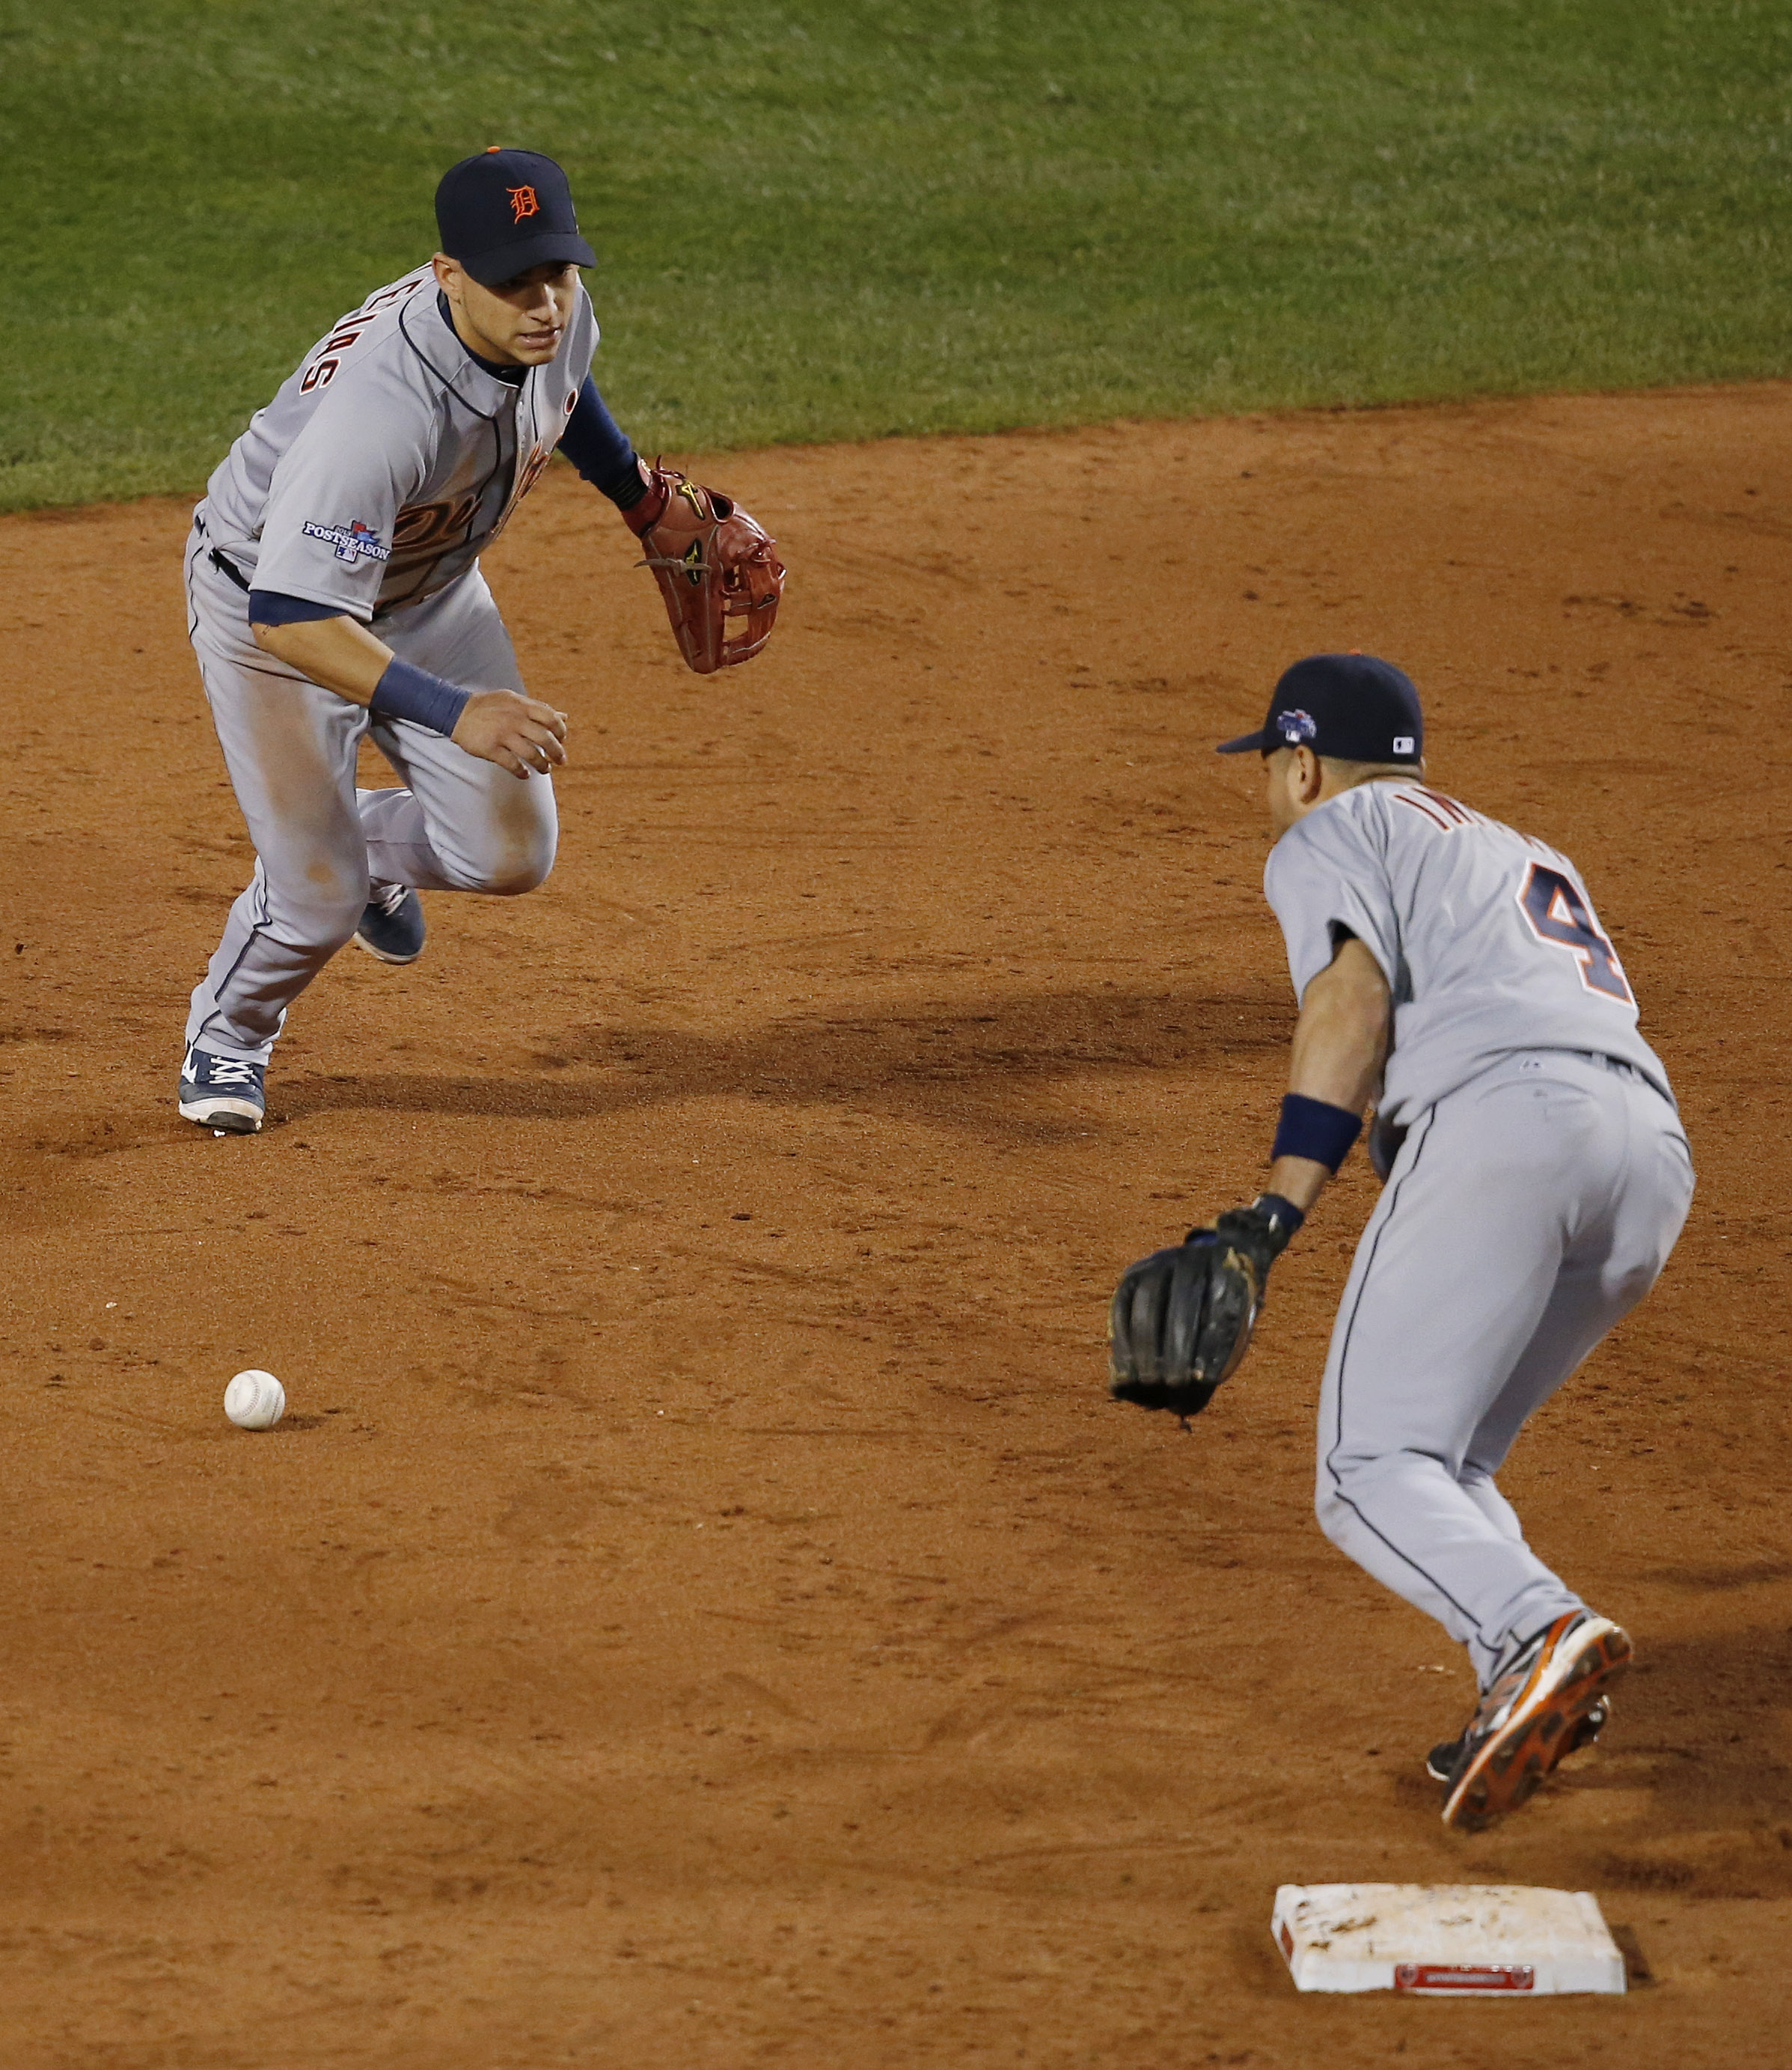 Red Sox beat Tigers 5-2 to advance to World Series